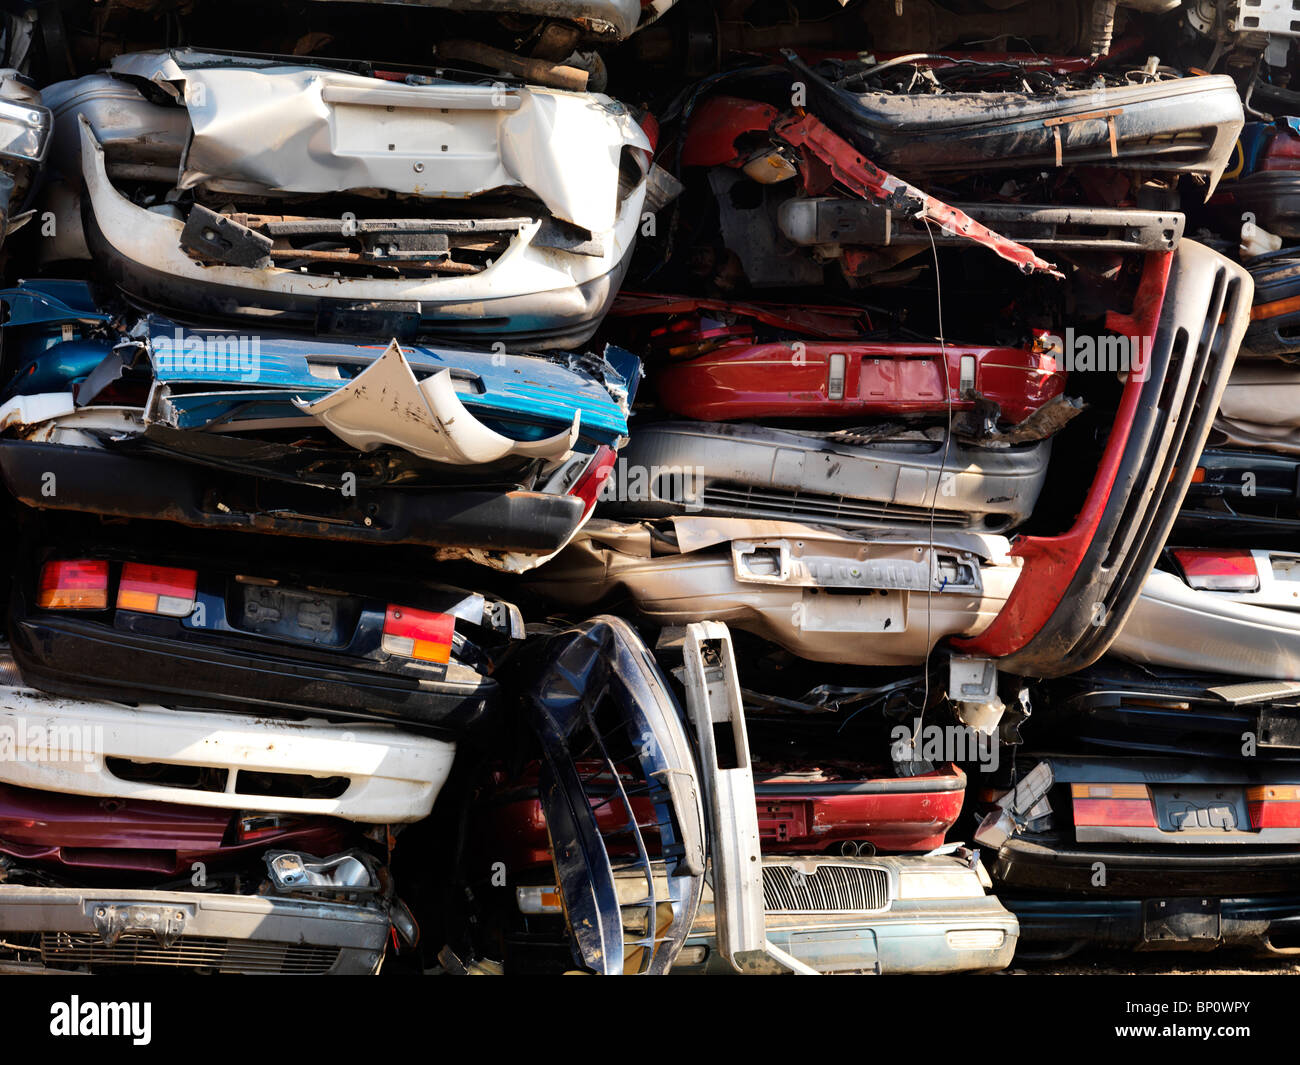 Piled up crushed cars on a scrap yard Stock Photo